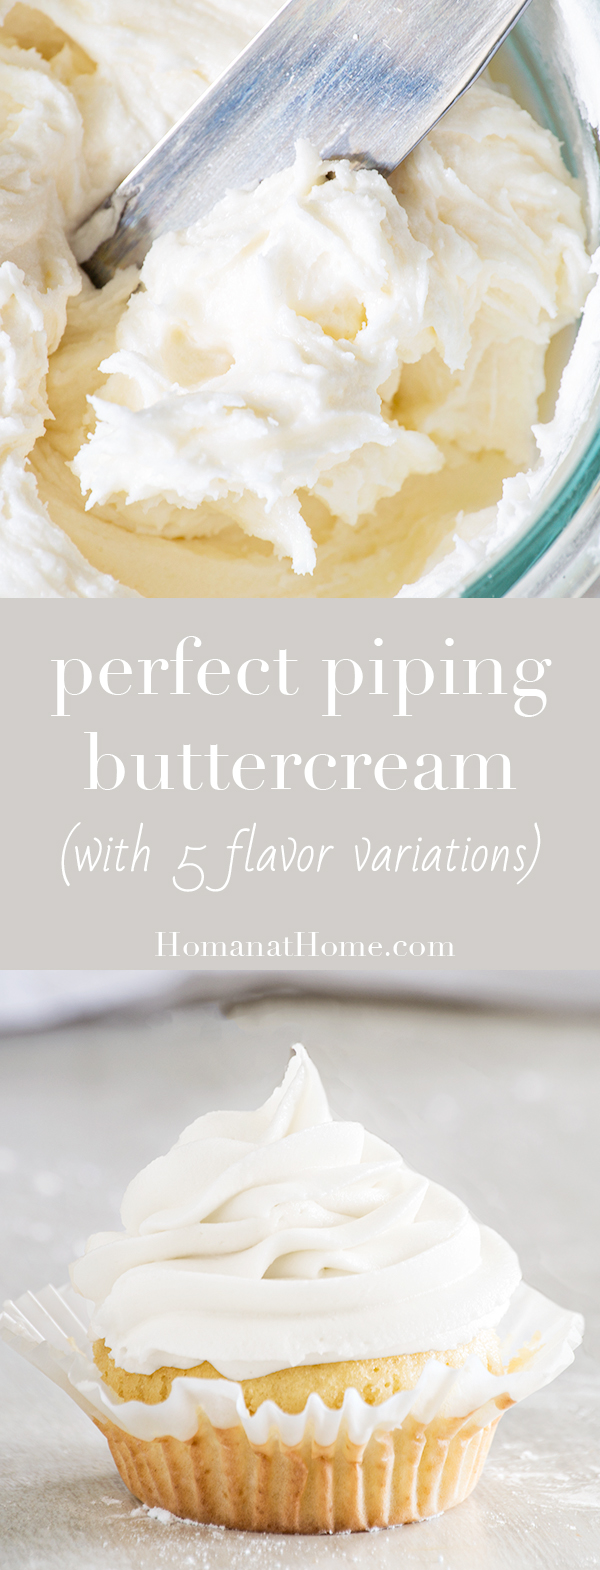 Perfect Piping Buttercream | Homan at Home